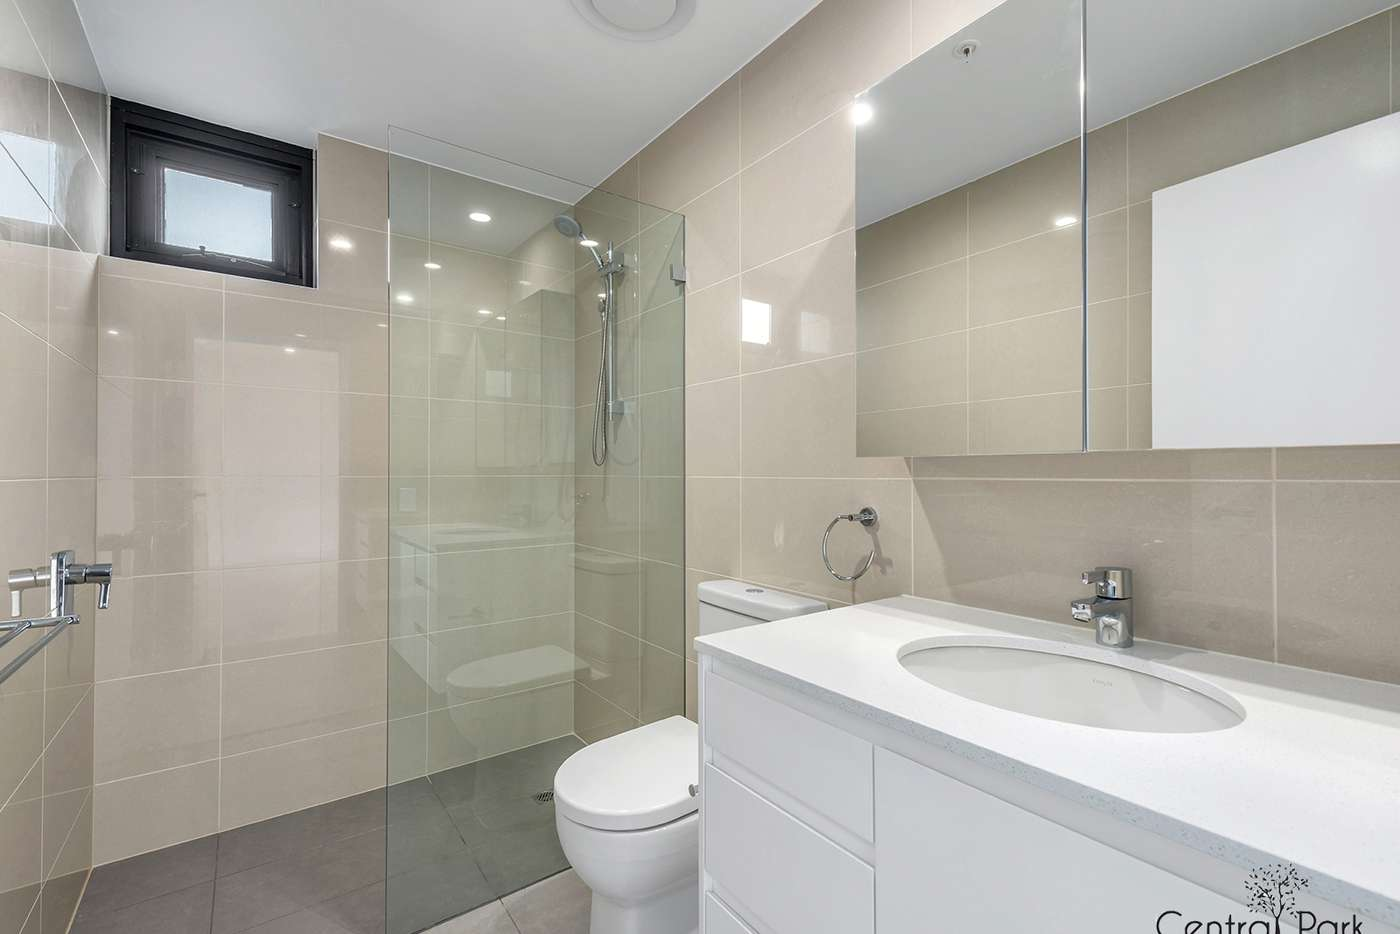 Fifth view of Homely apartment listing, 111/181 Clarence Rd, Indooroopilly QLD 4068